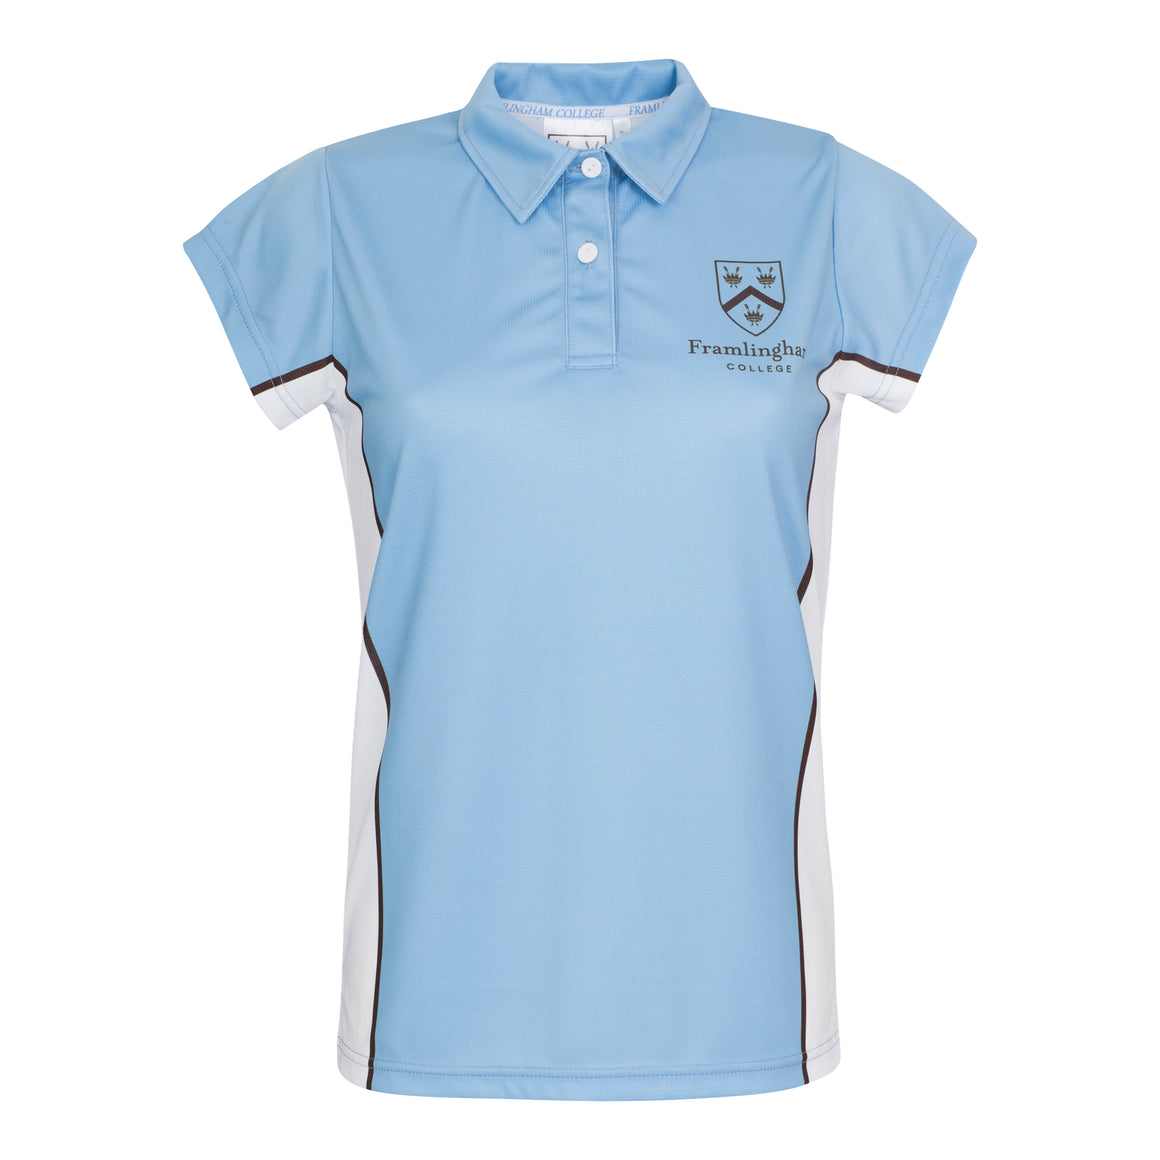 Framlingham College - Match Shirt - Fitted